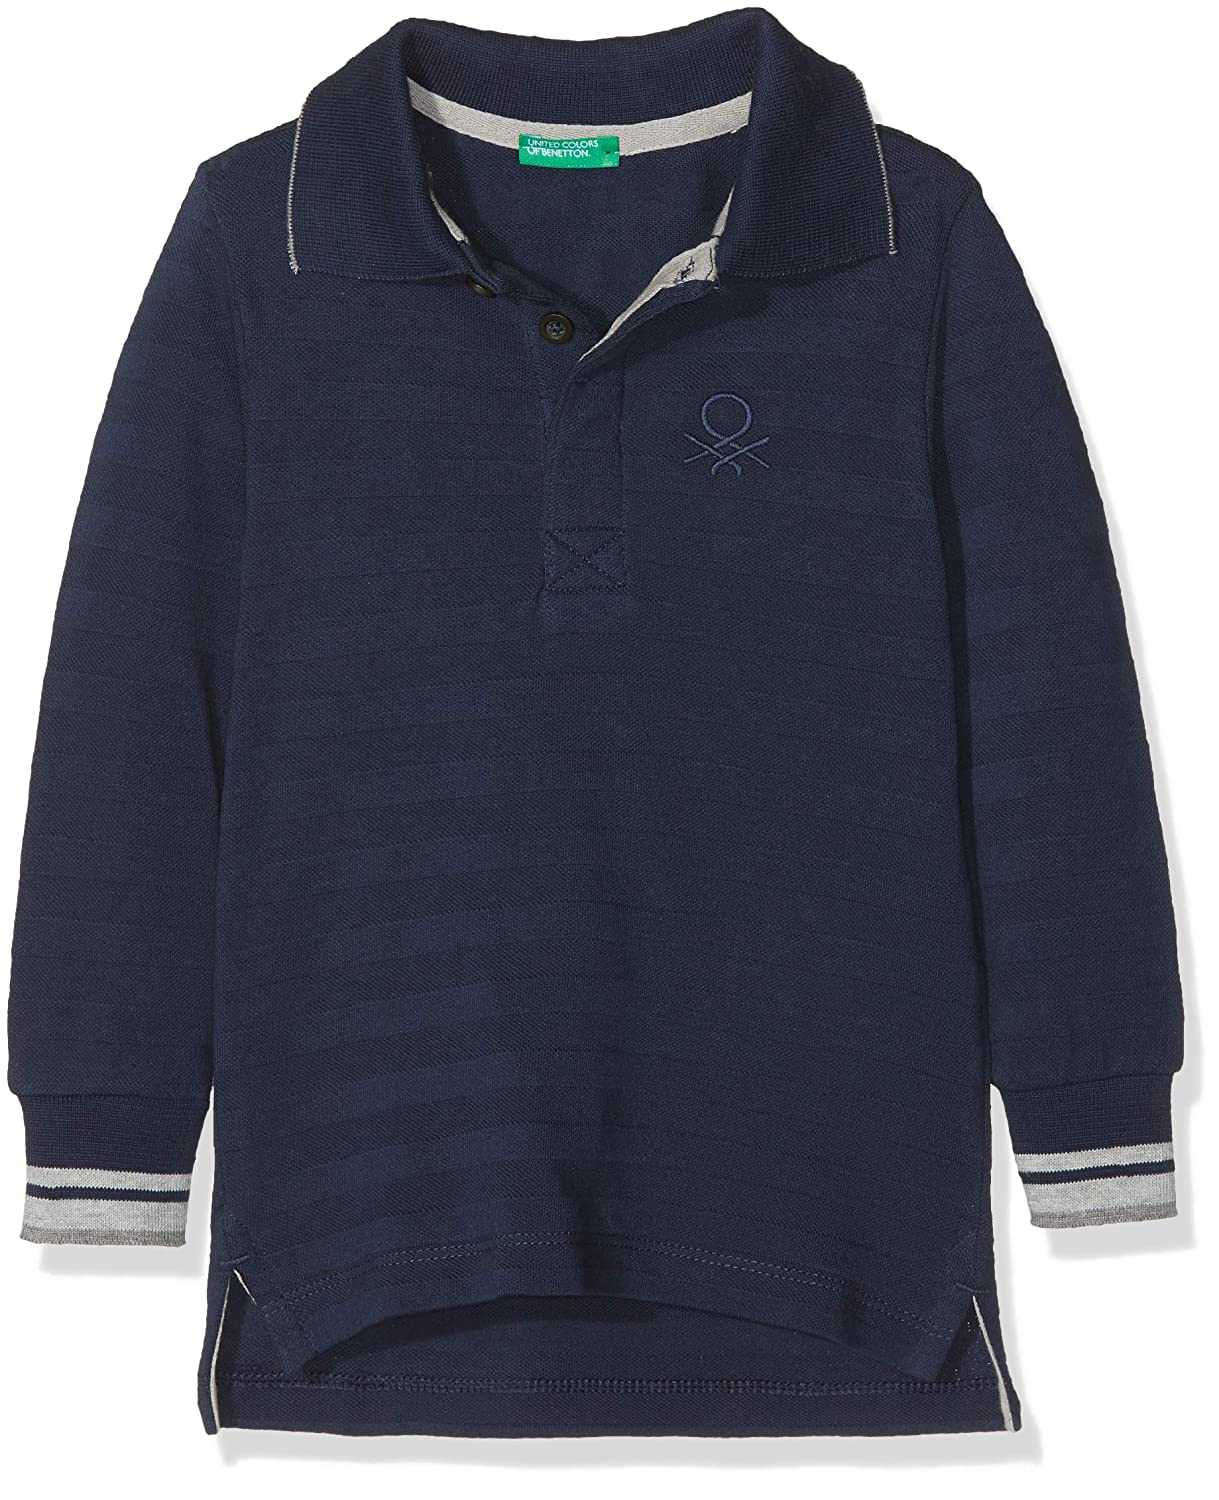 United Colors of Benetton L/s Polo Shirt, Azul (Blue 13c), 92 ...